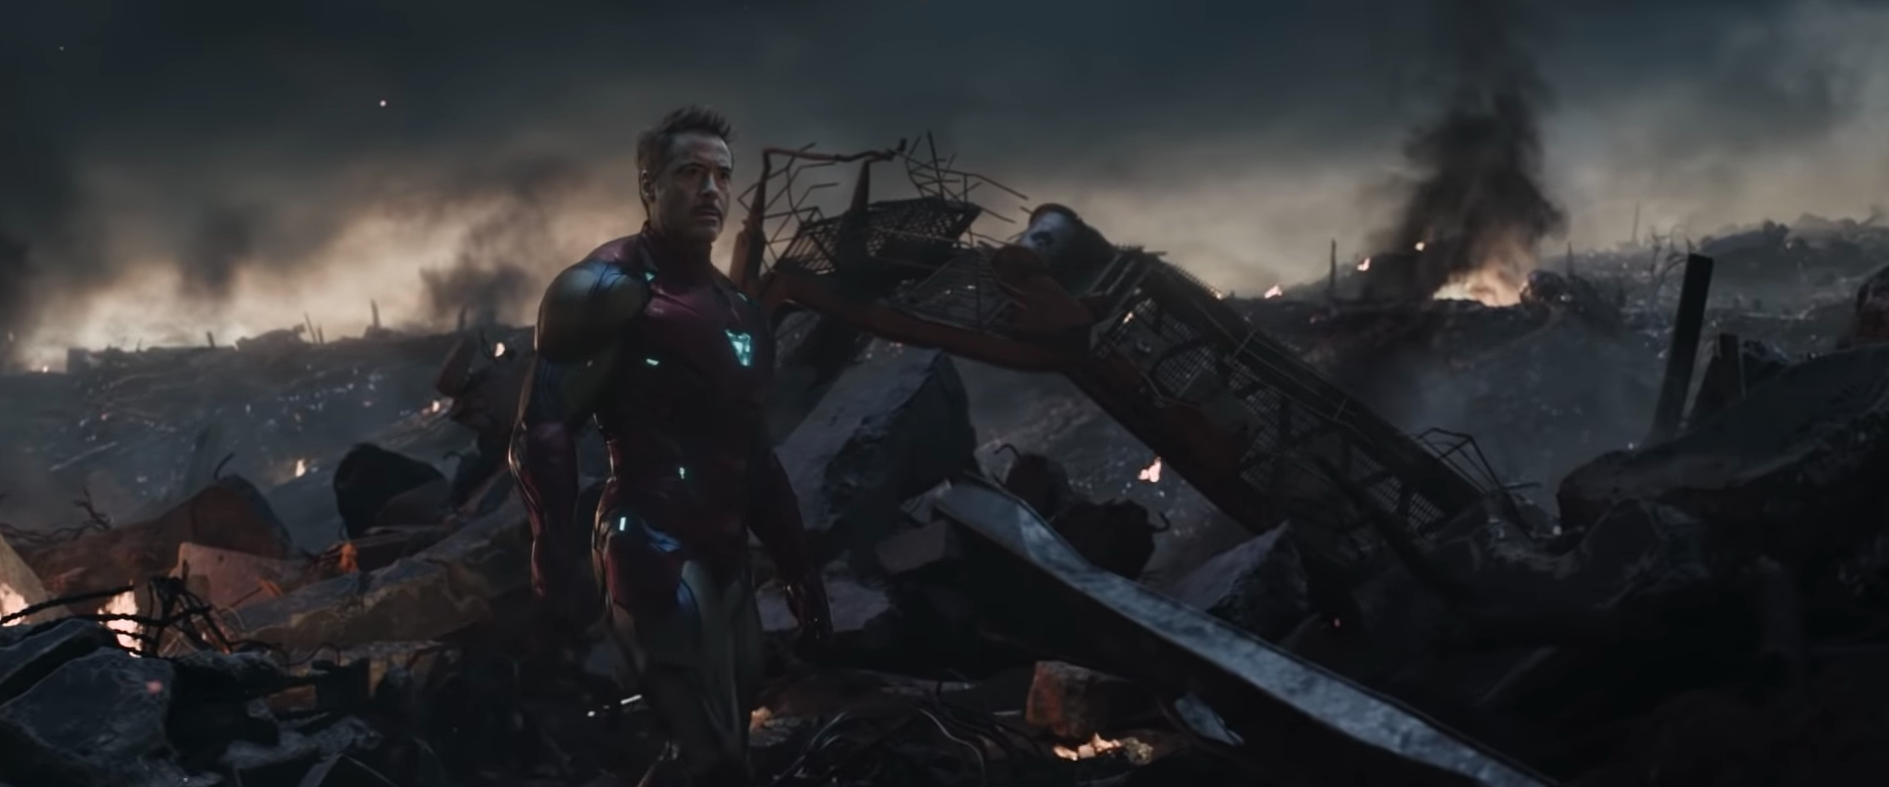 avengers-endgame-final-trailer-15